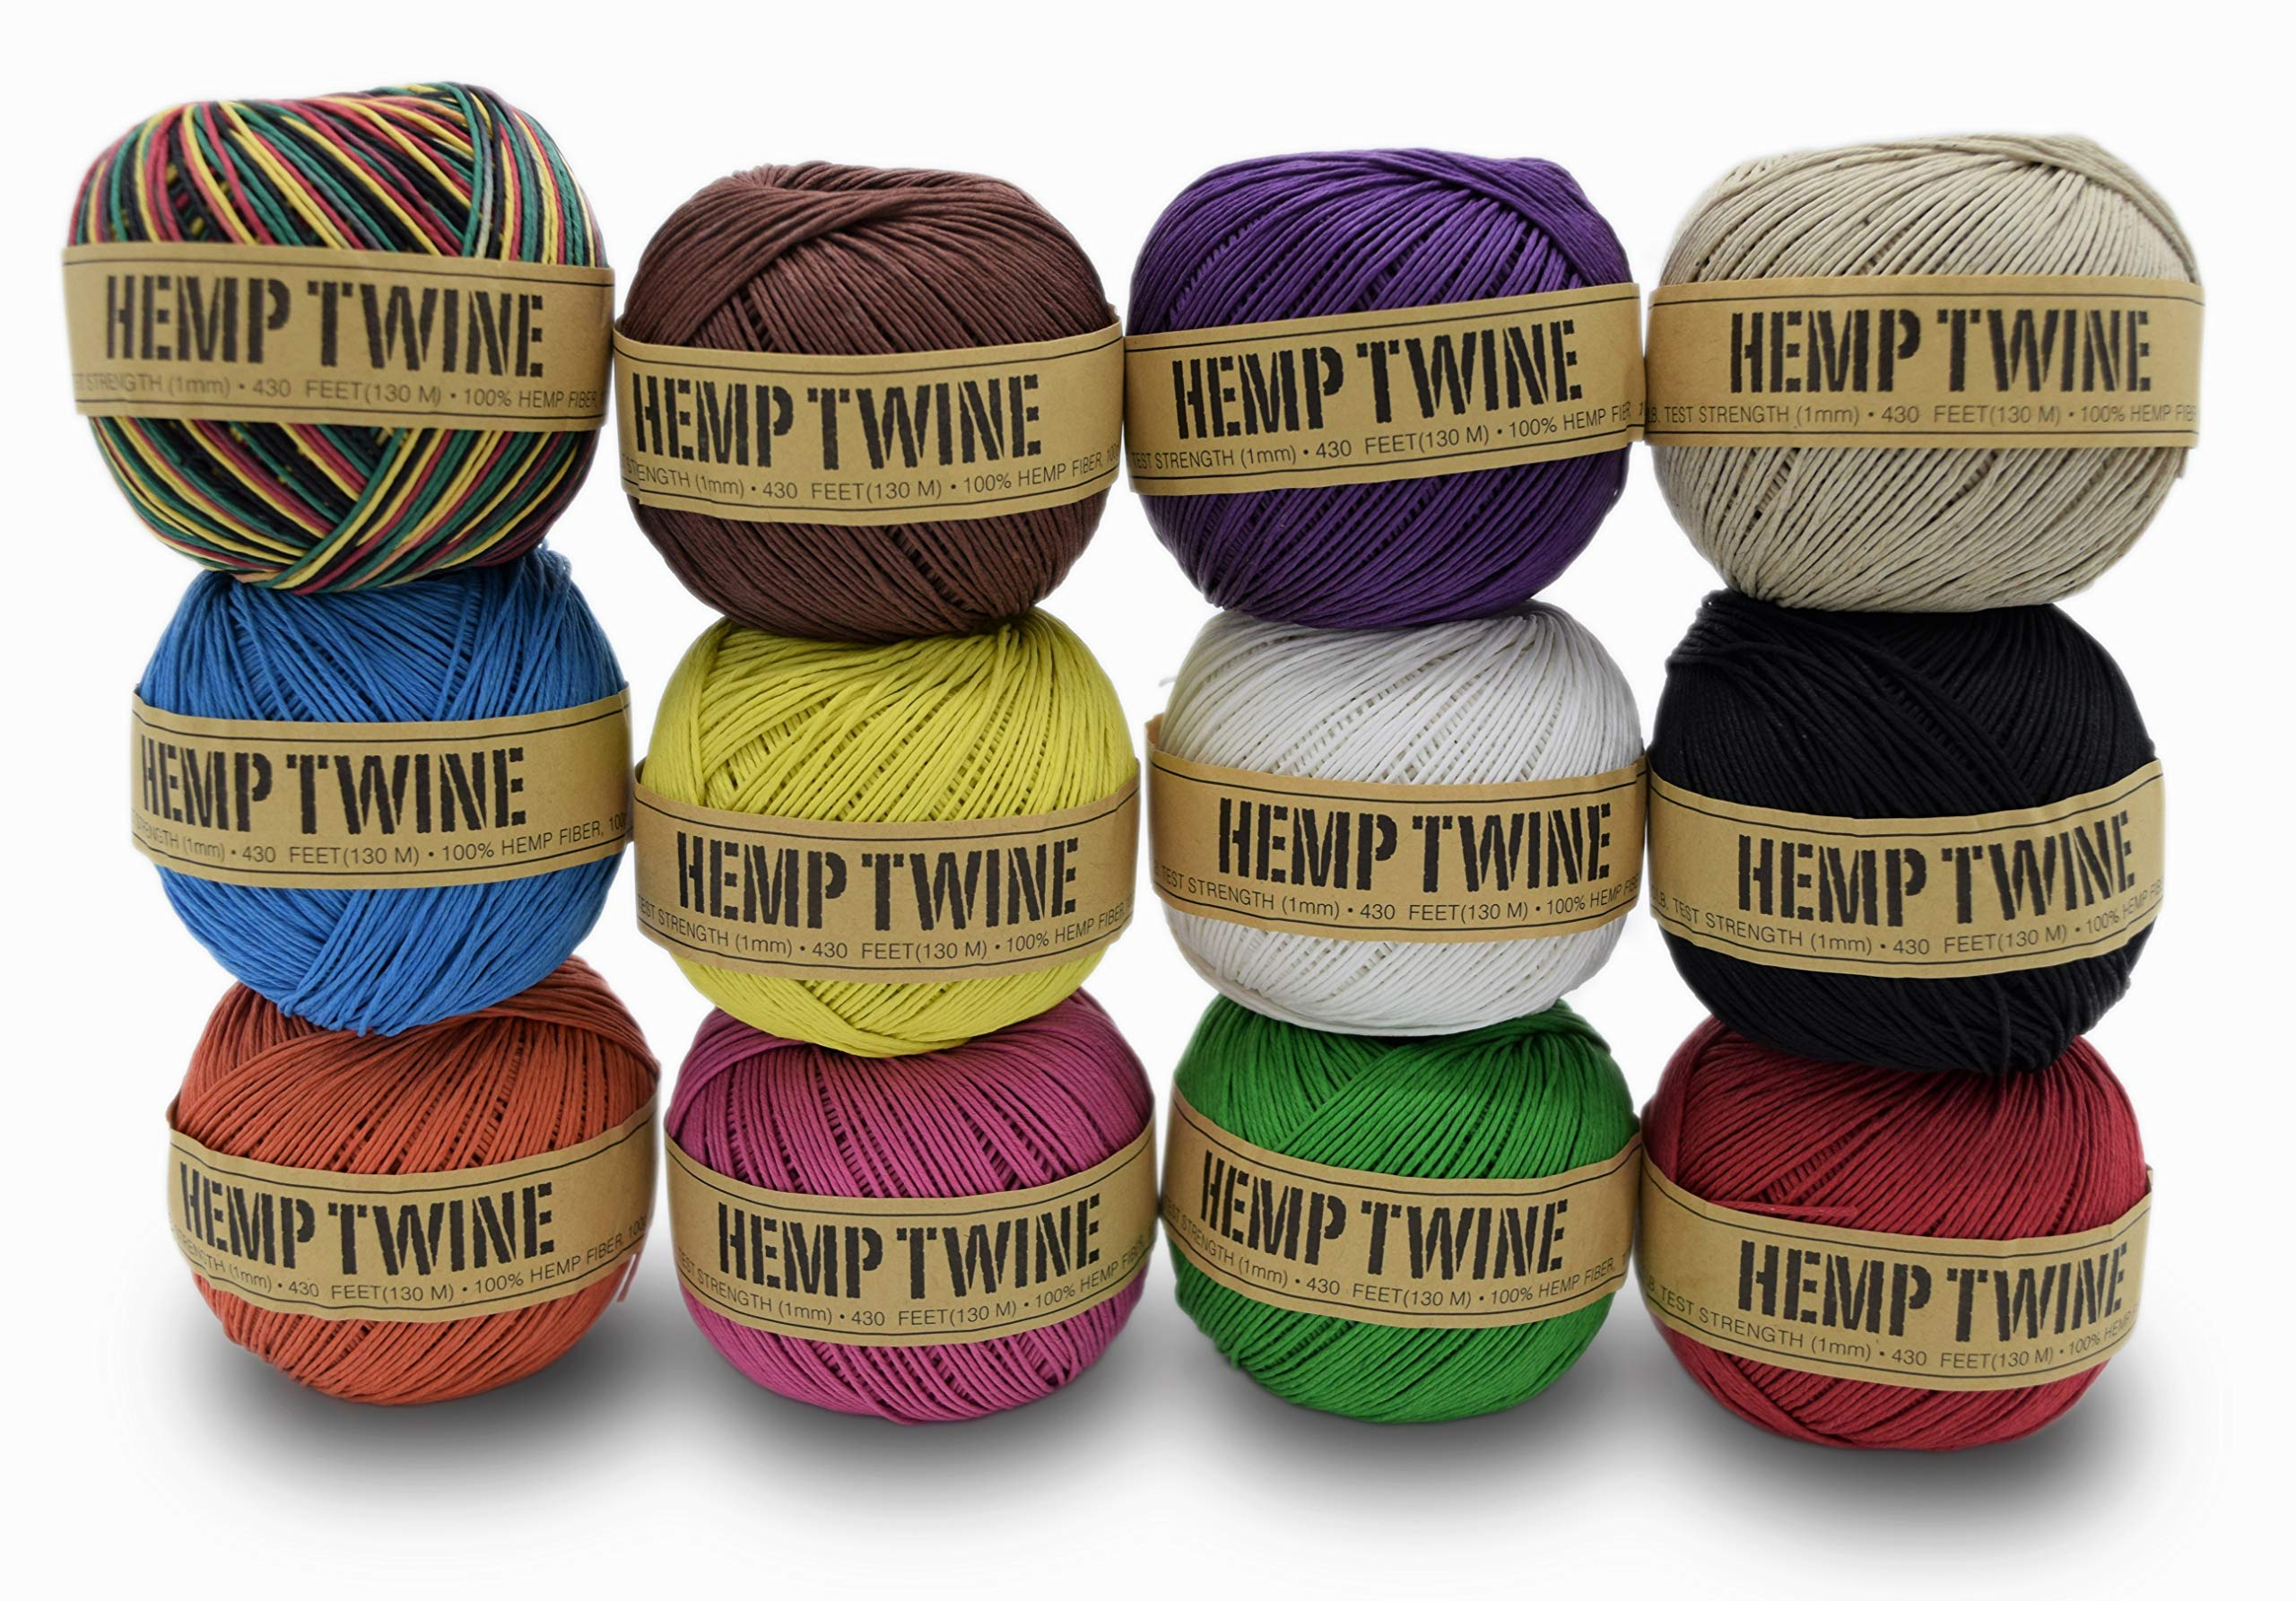 100% Hemp Twine Ball 1MM, 100G/430 Ft. - 20 lb. Test Strength - 12 Pack Assorted Colors by Bean Products